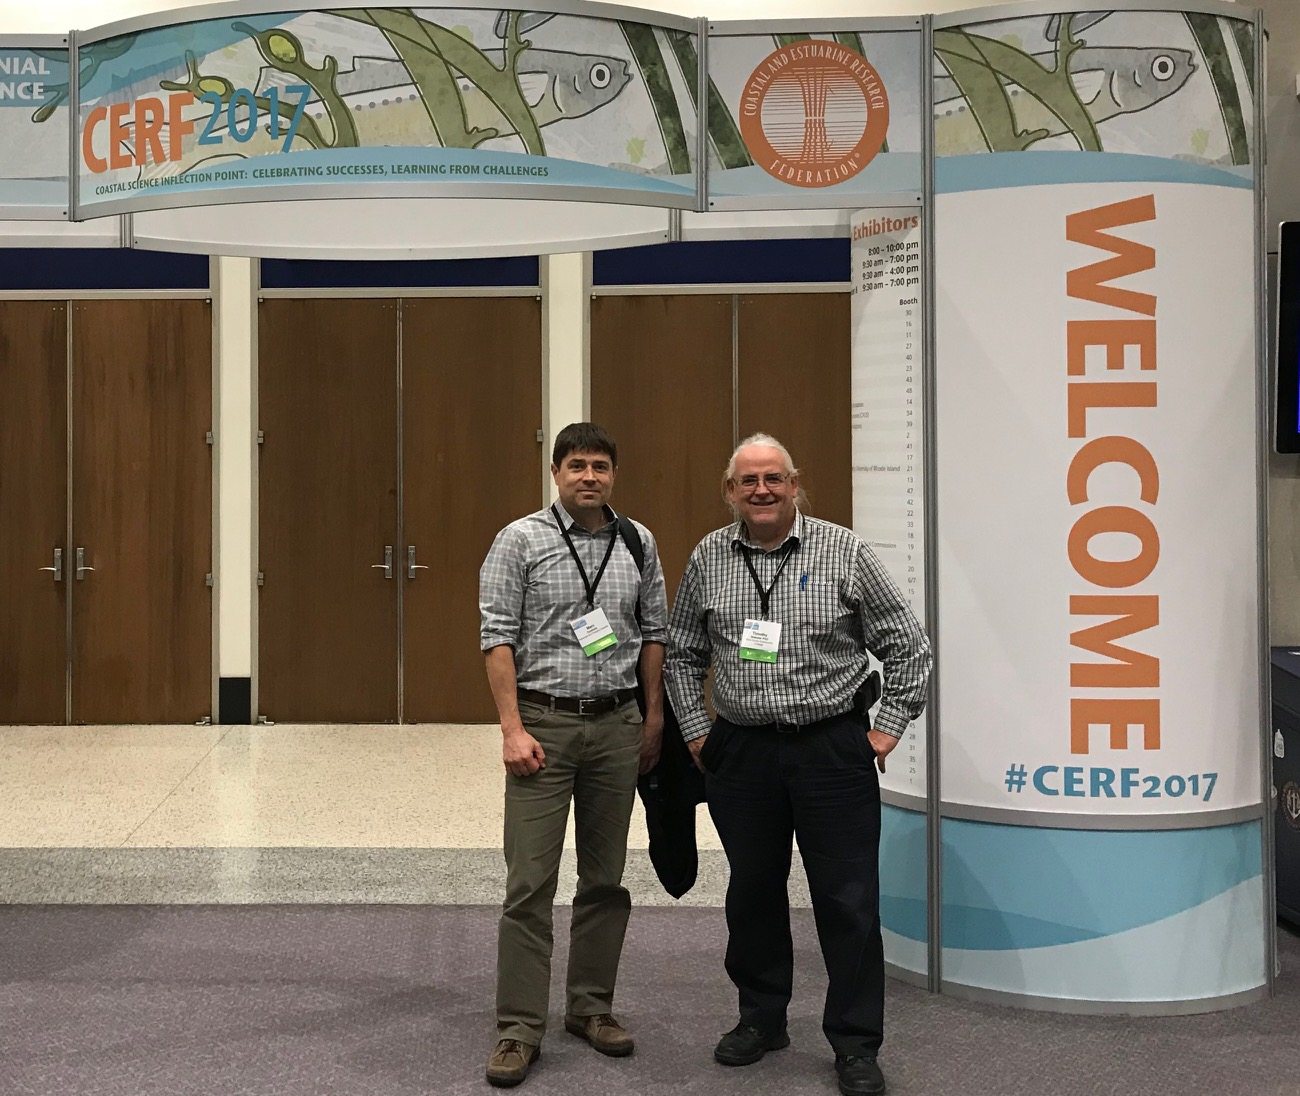 Dr. Tim Webster and Marc Ouellette of DFO Gulf Region at the Coastal and Estuarine Research Federation 24th Biennial Conference in Providence, Rhode Island.